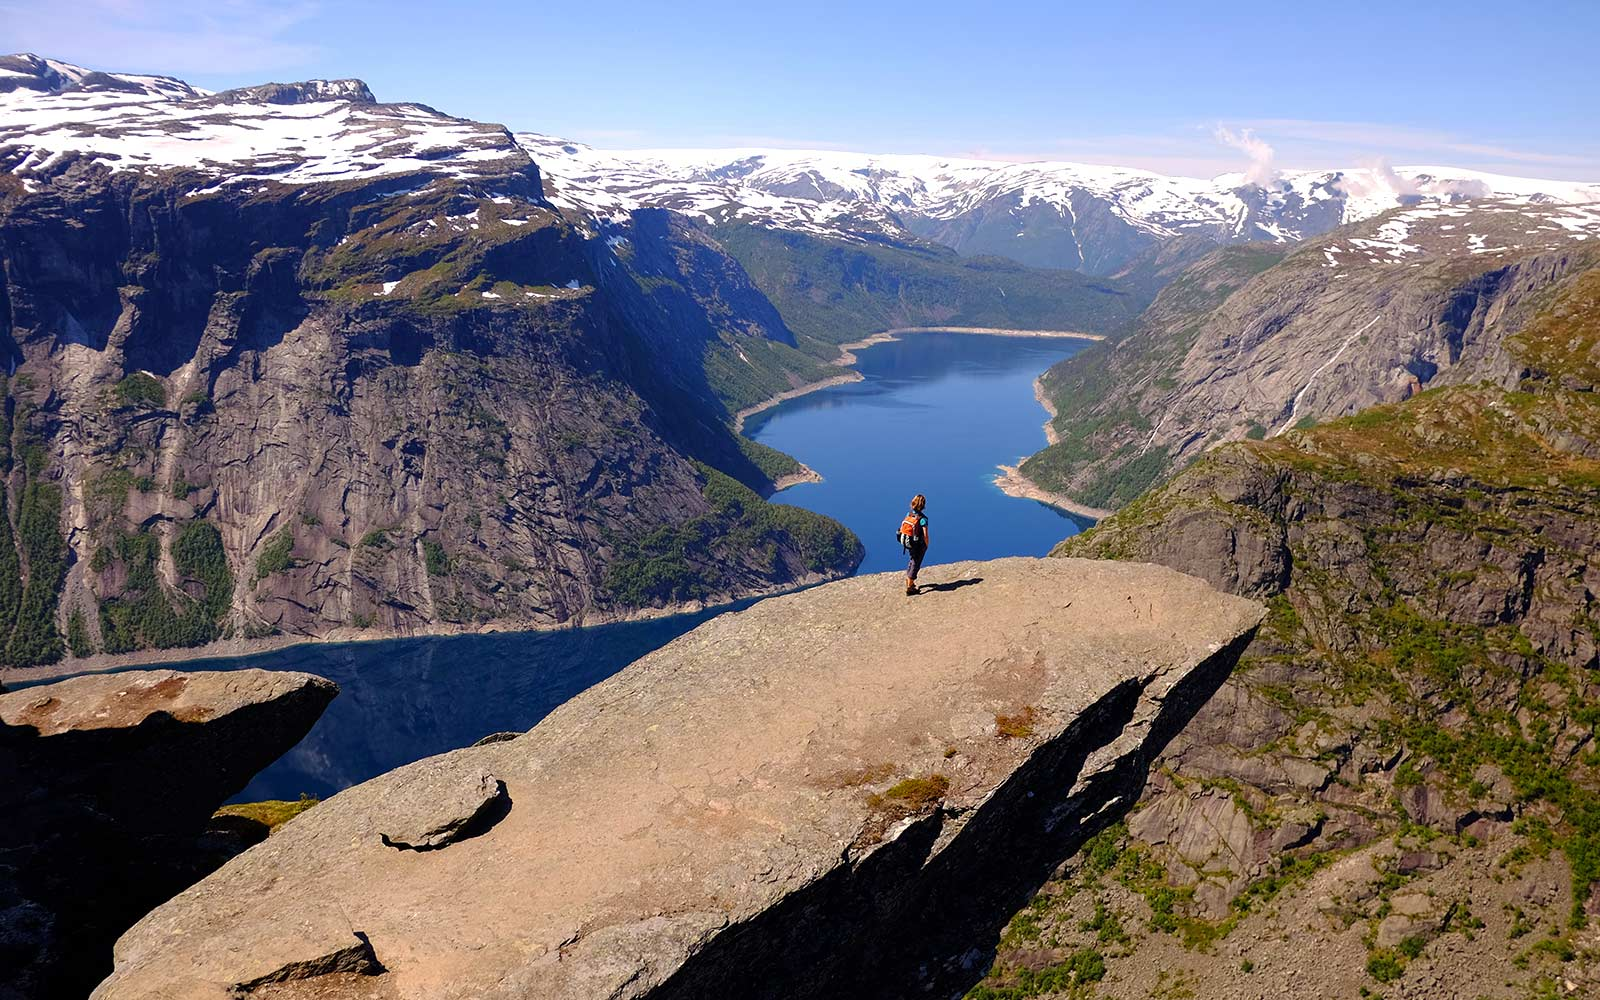 Norway Might be Limiting the Number of Tourists Visiting its Popular Outdoor Attractions